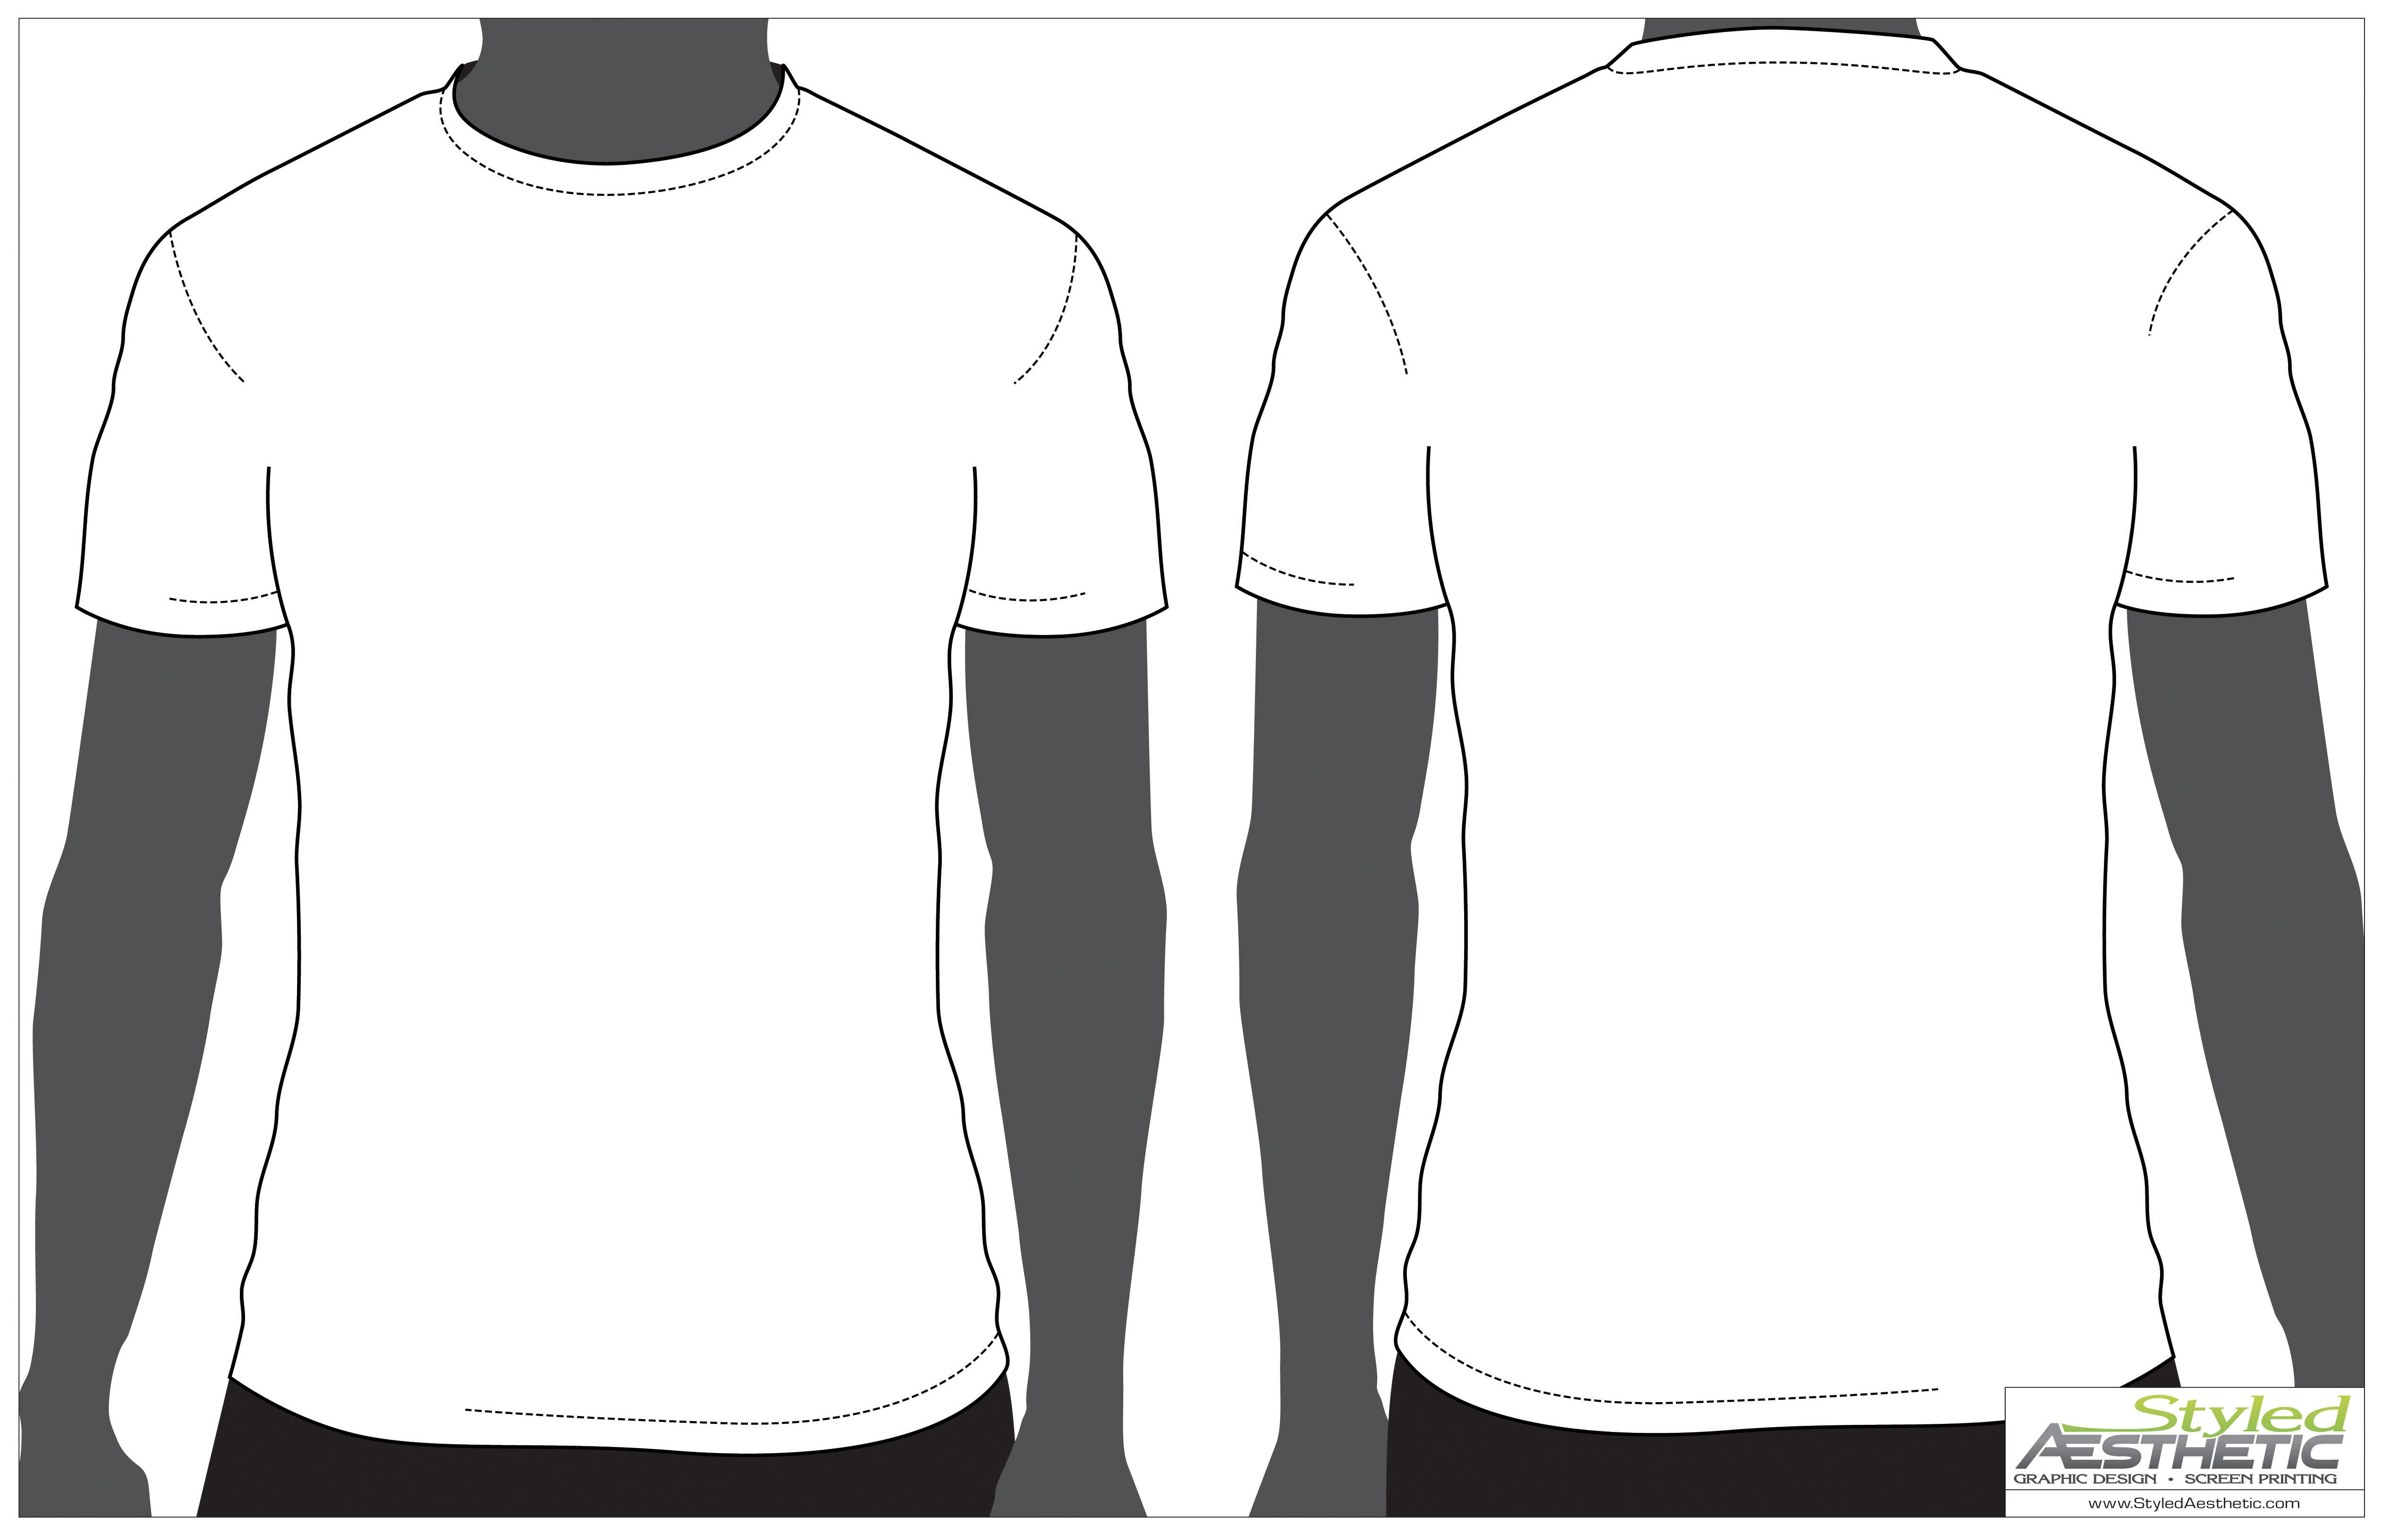 Blank Shirt Template For Photoshop  Dreamworks For Blank T Shirt Design Template Psd